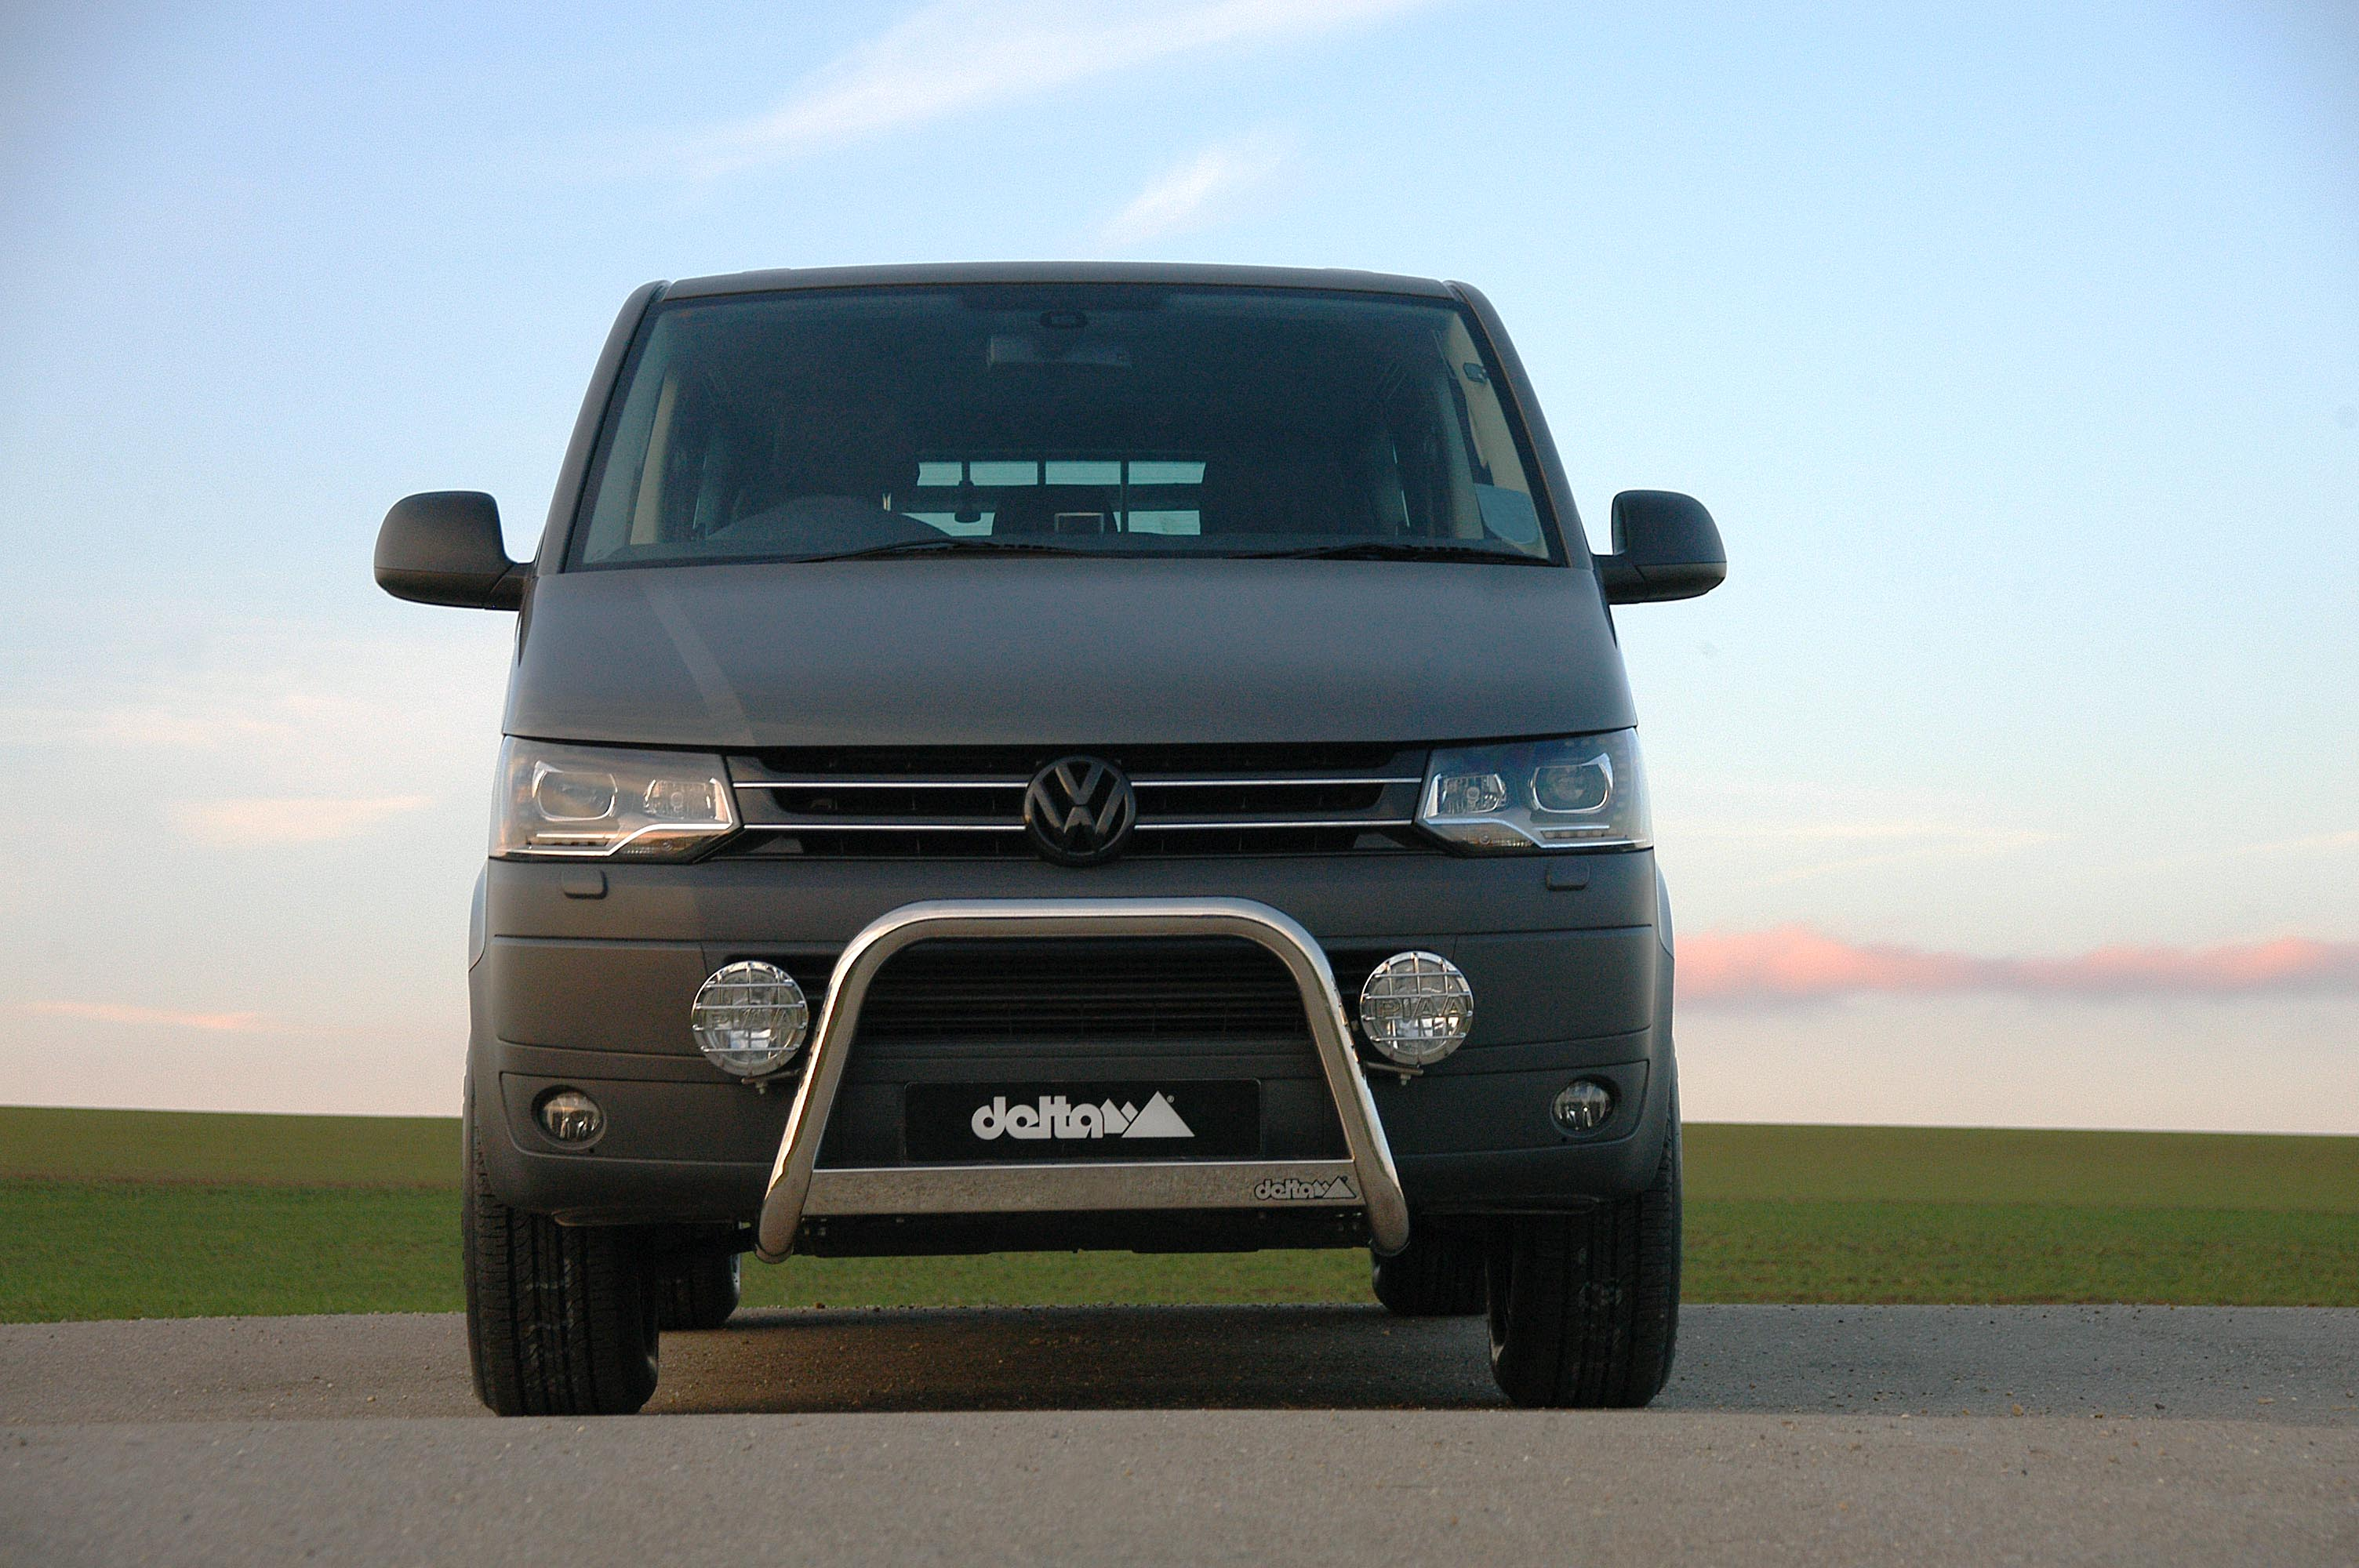 vw transporter off road conversion